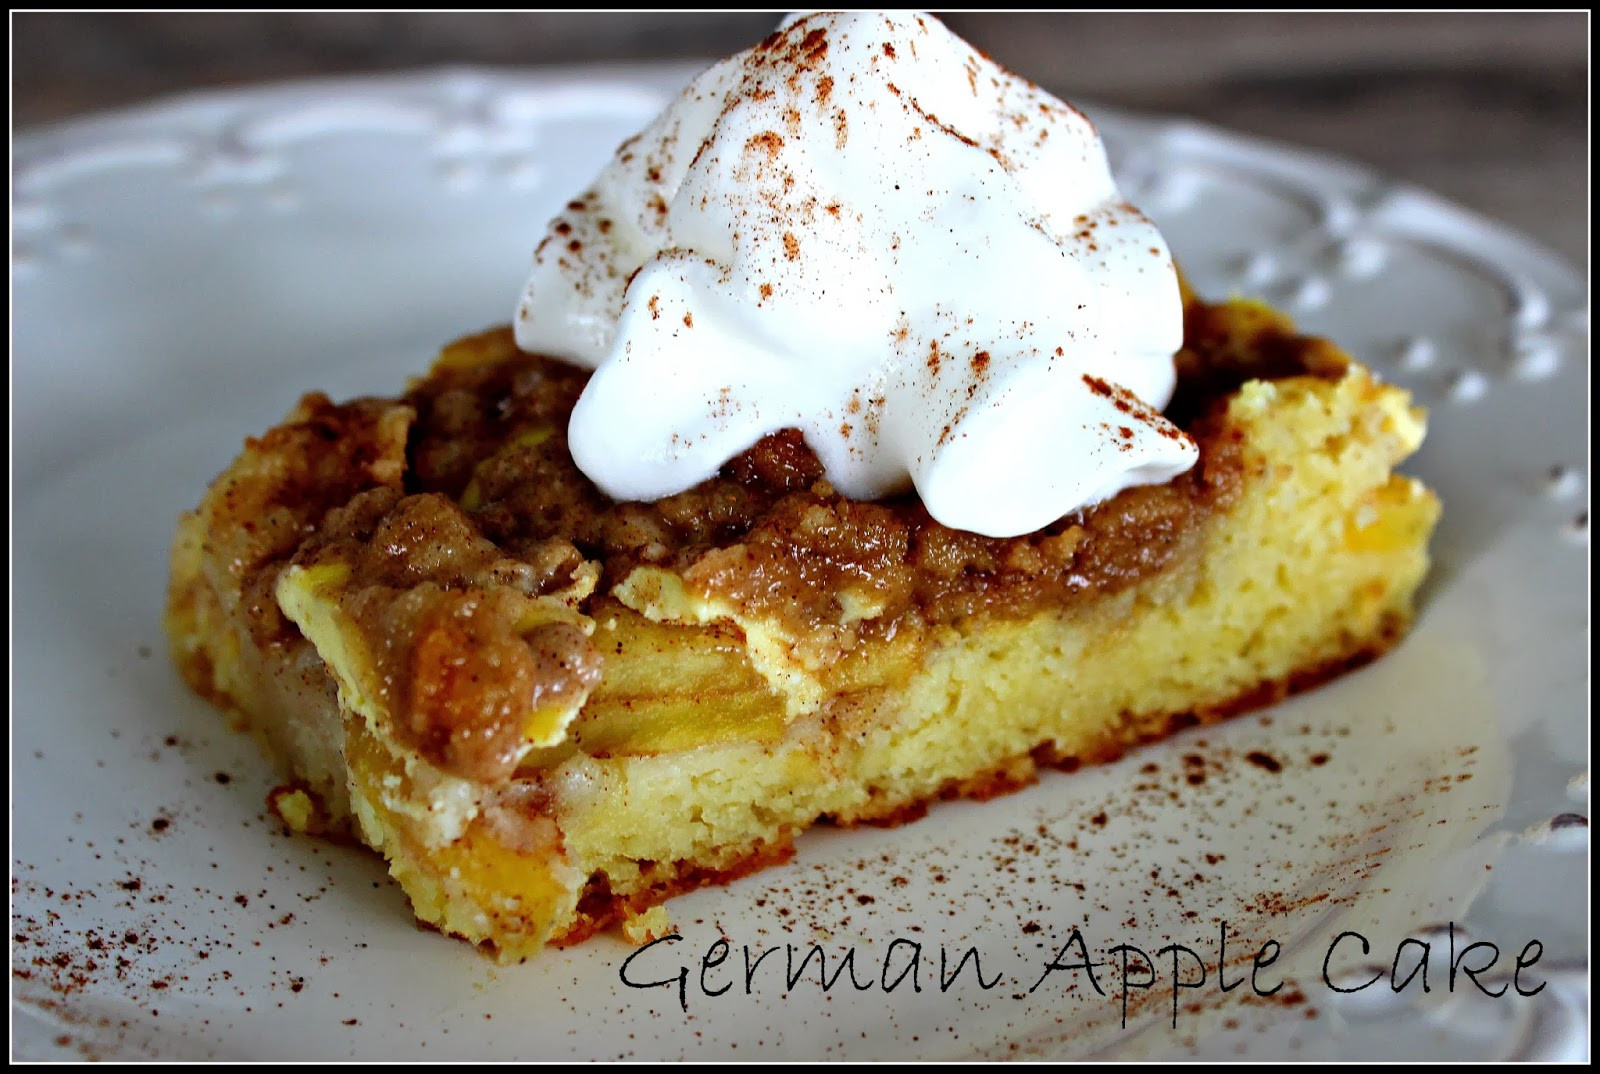 Deals to Meals: German Apple Cake (Apfelkuchen)